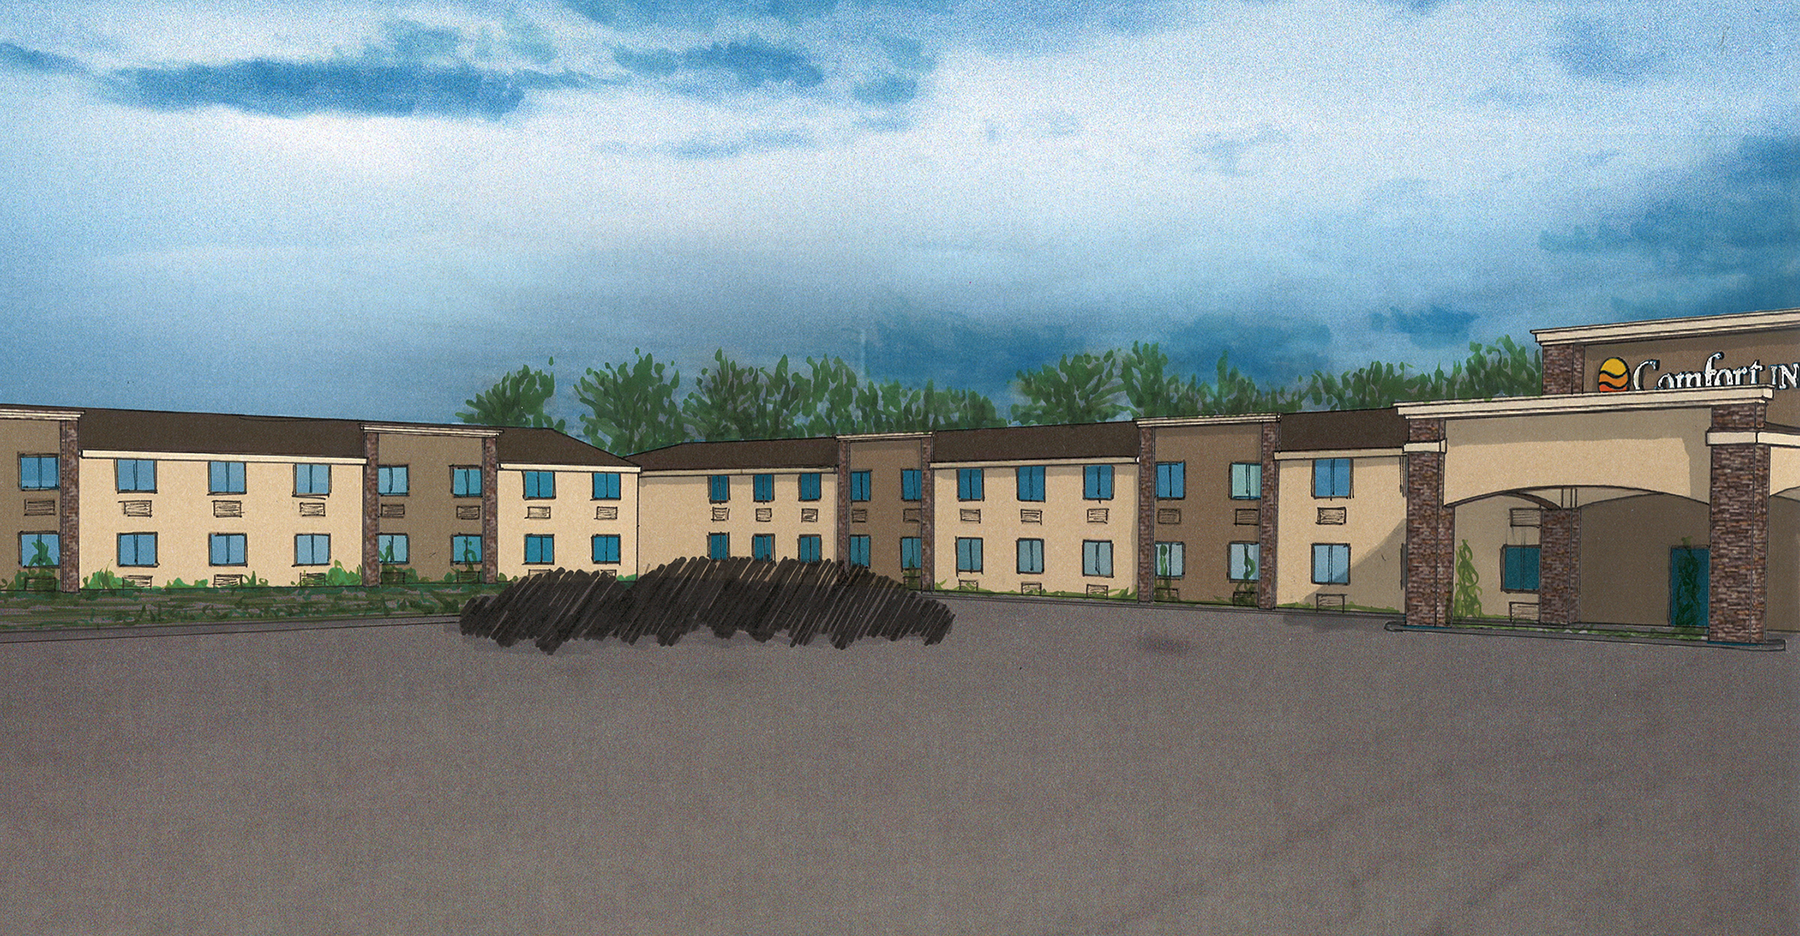 Drawing of a front of a hotel